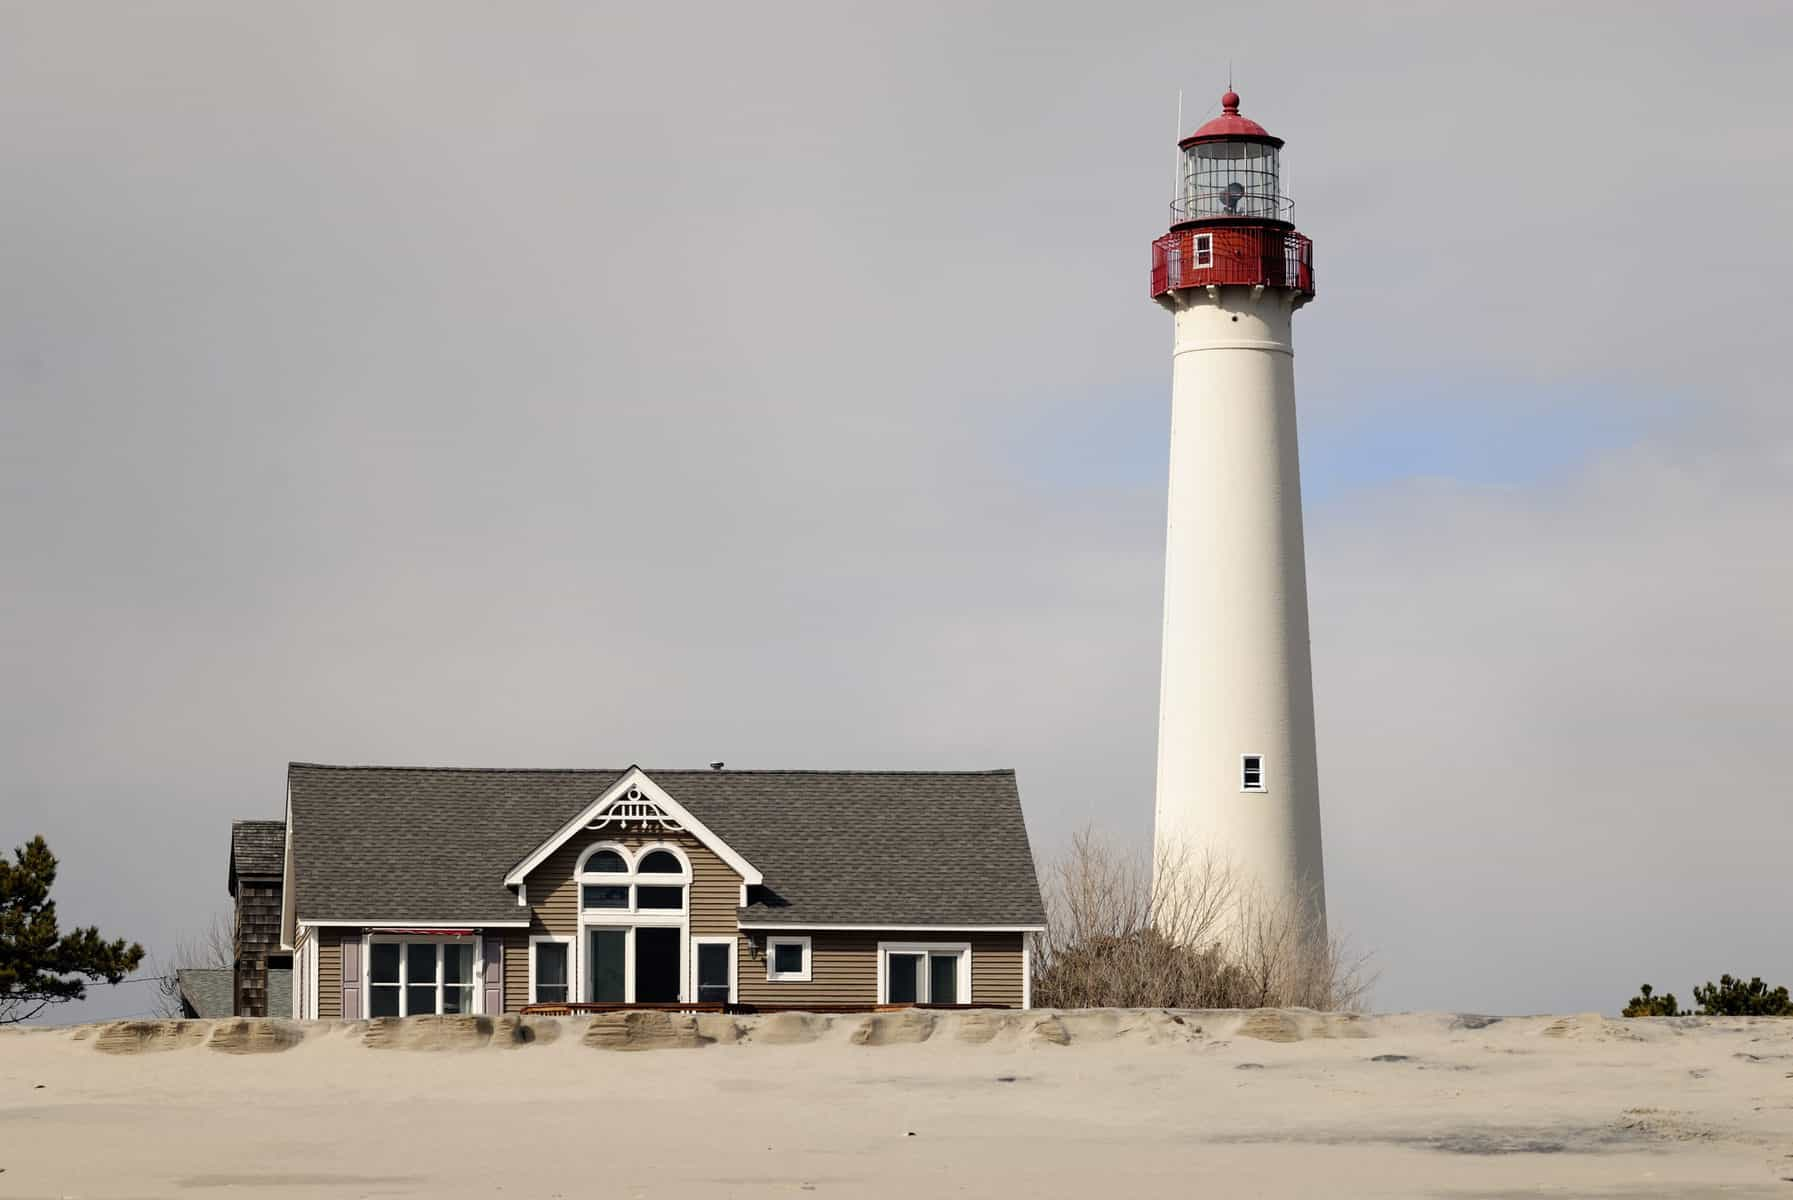 Cape May Lighthouse in Cape May New Jersey